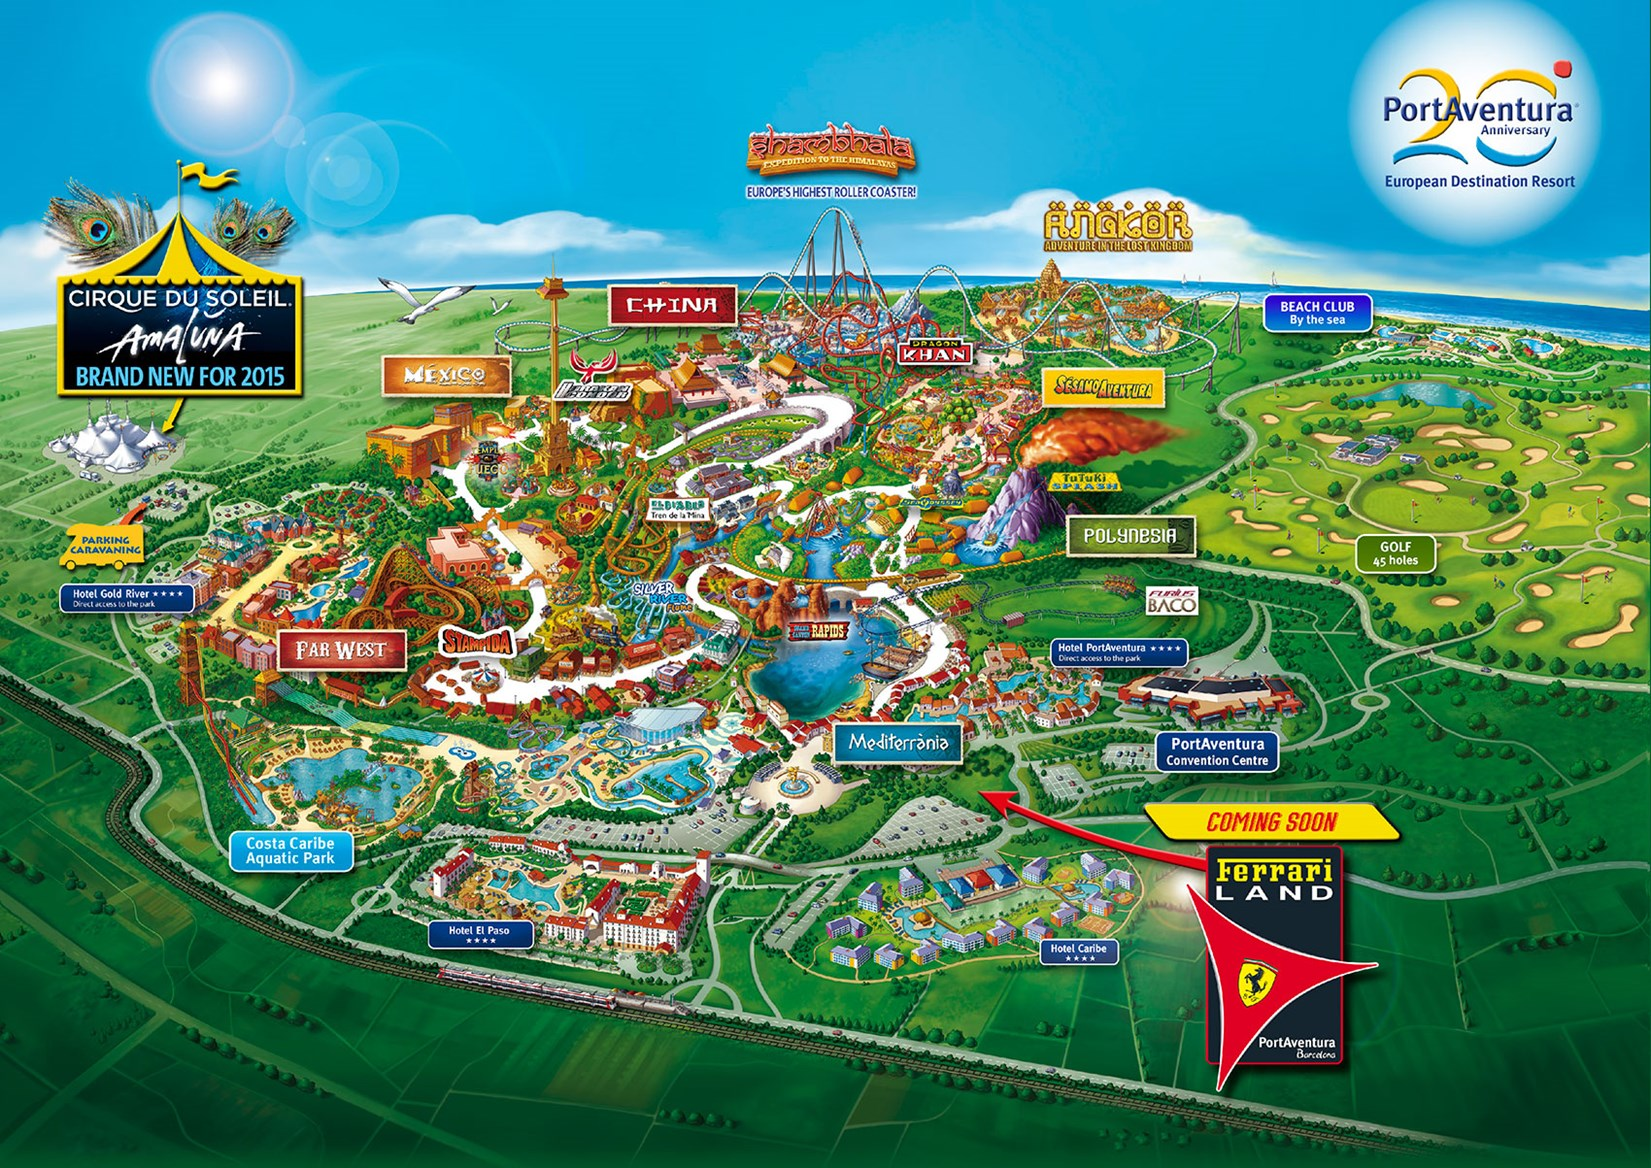 Ferrari World Map.A Brand Extension Too Far Ferrari Land Theme Park And Hotel To Open